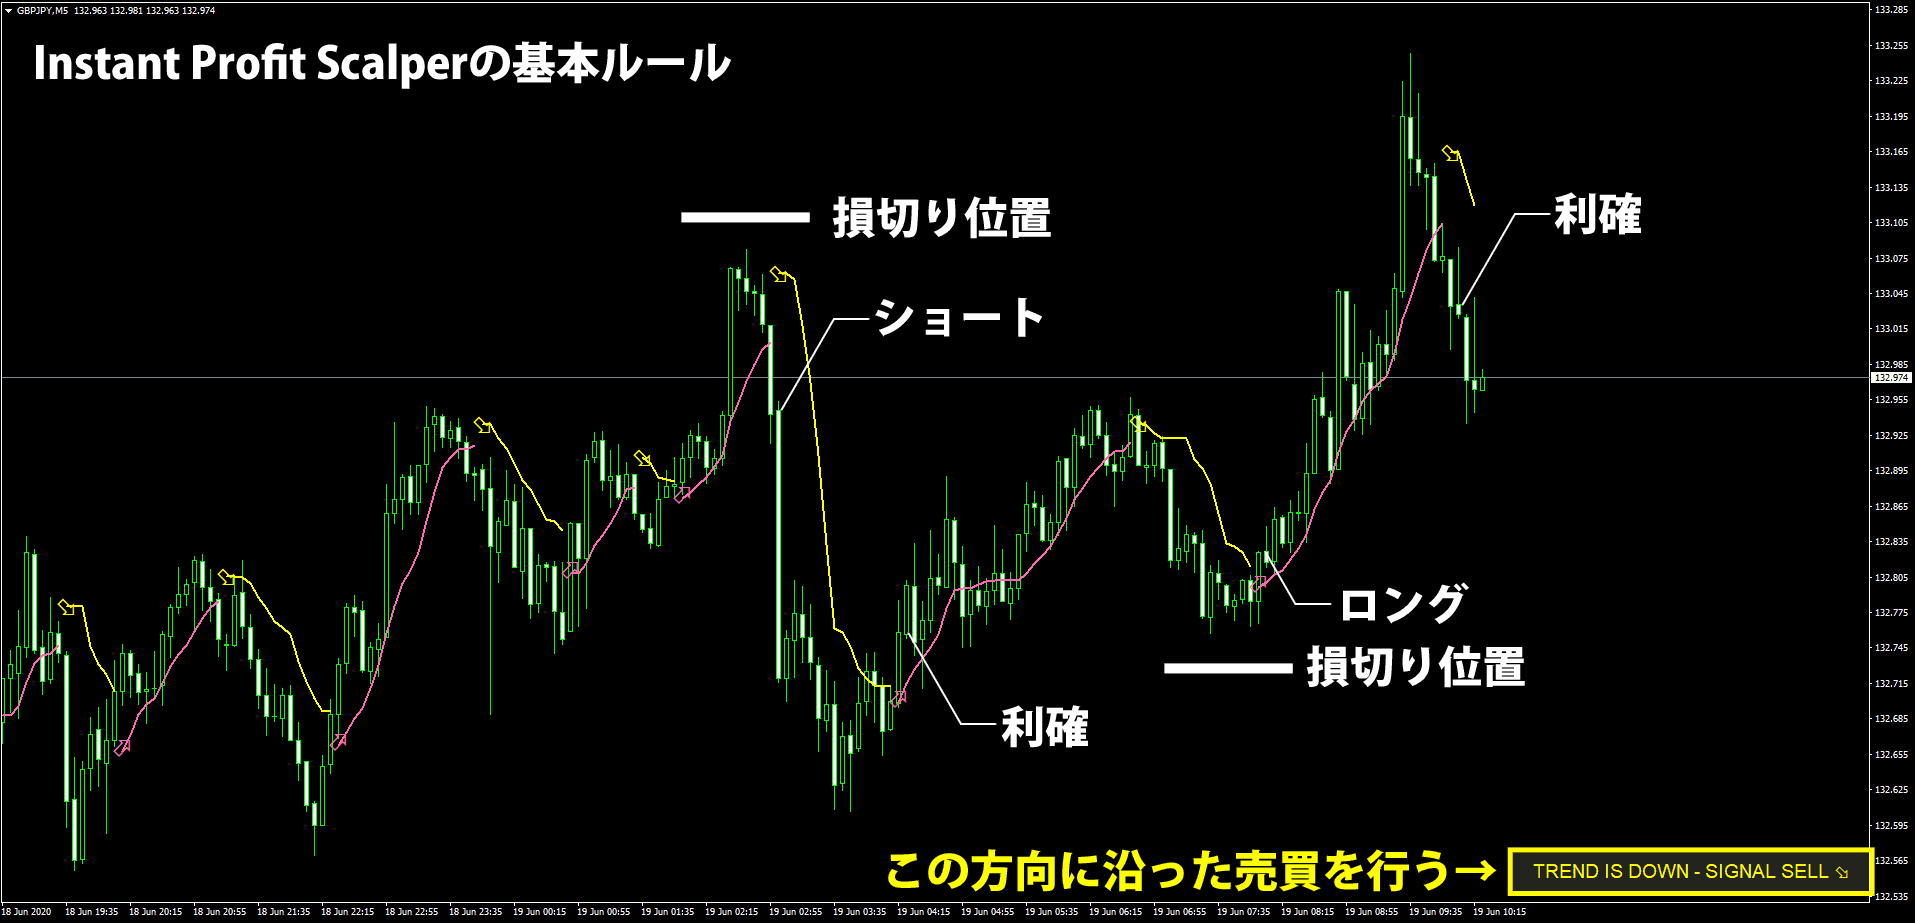 Instant Profit Scalperの基本ルール